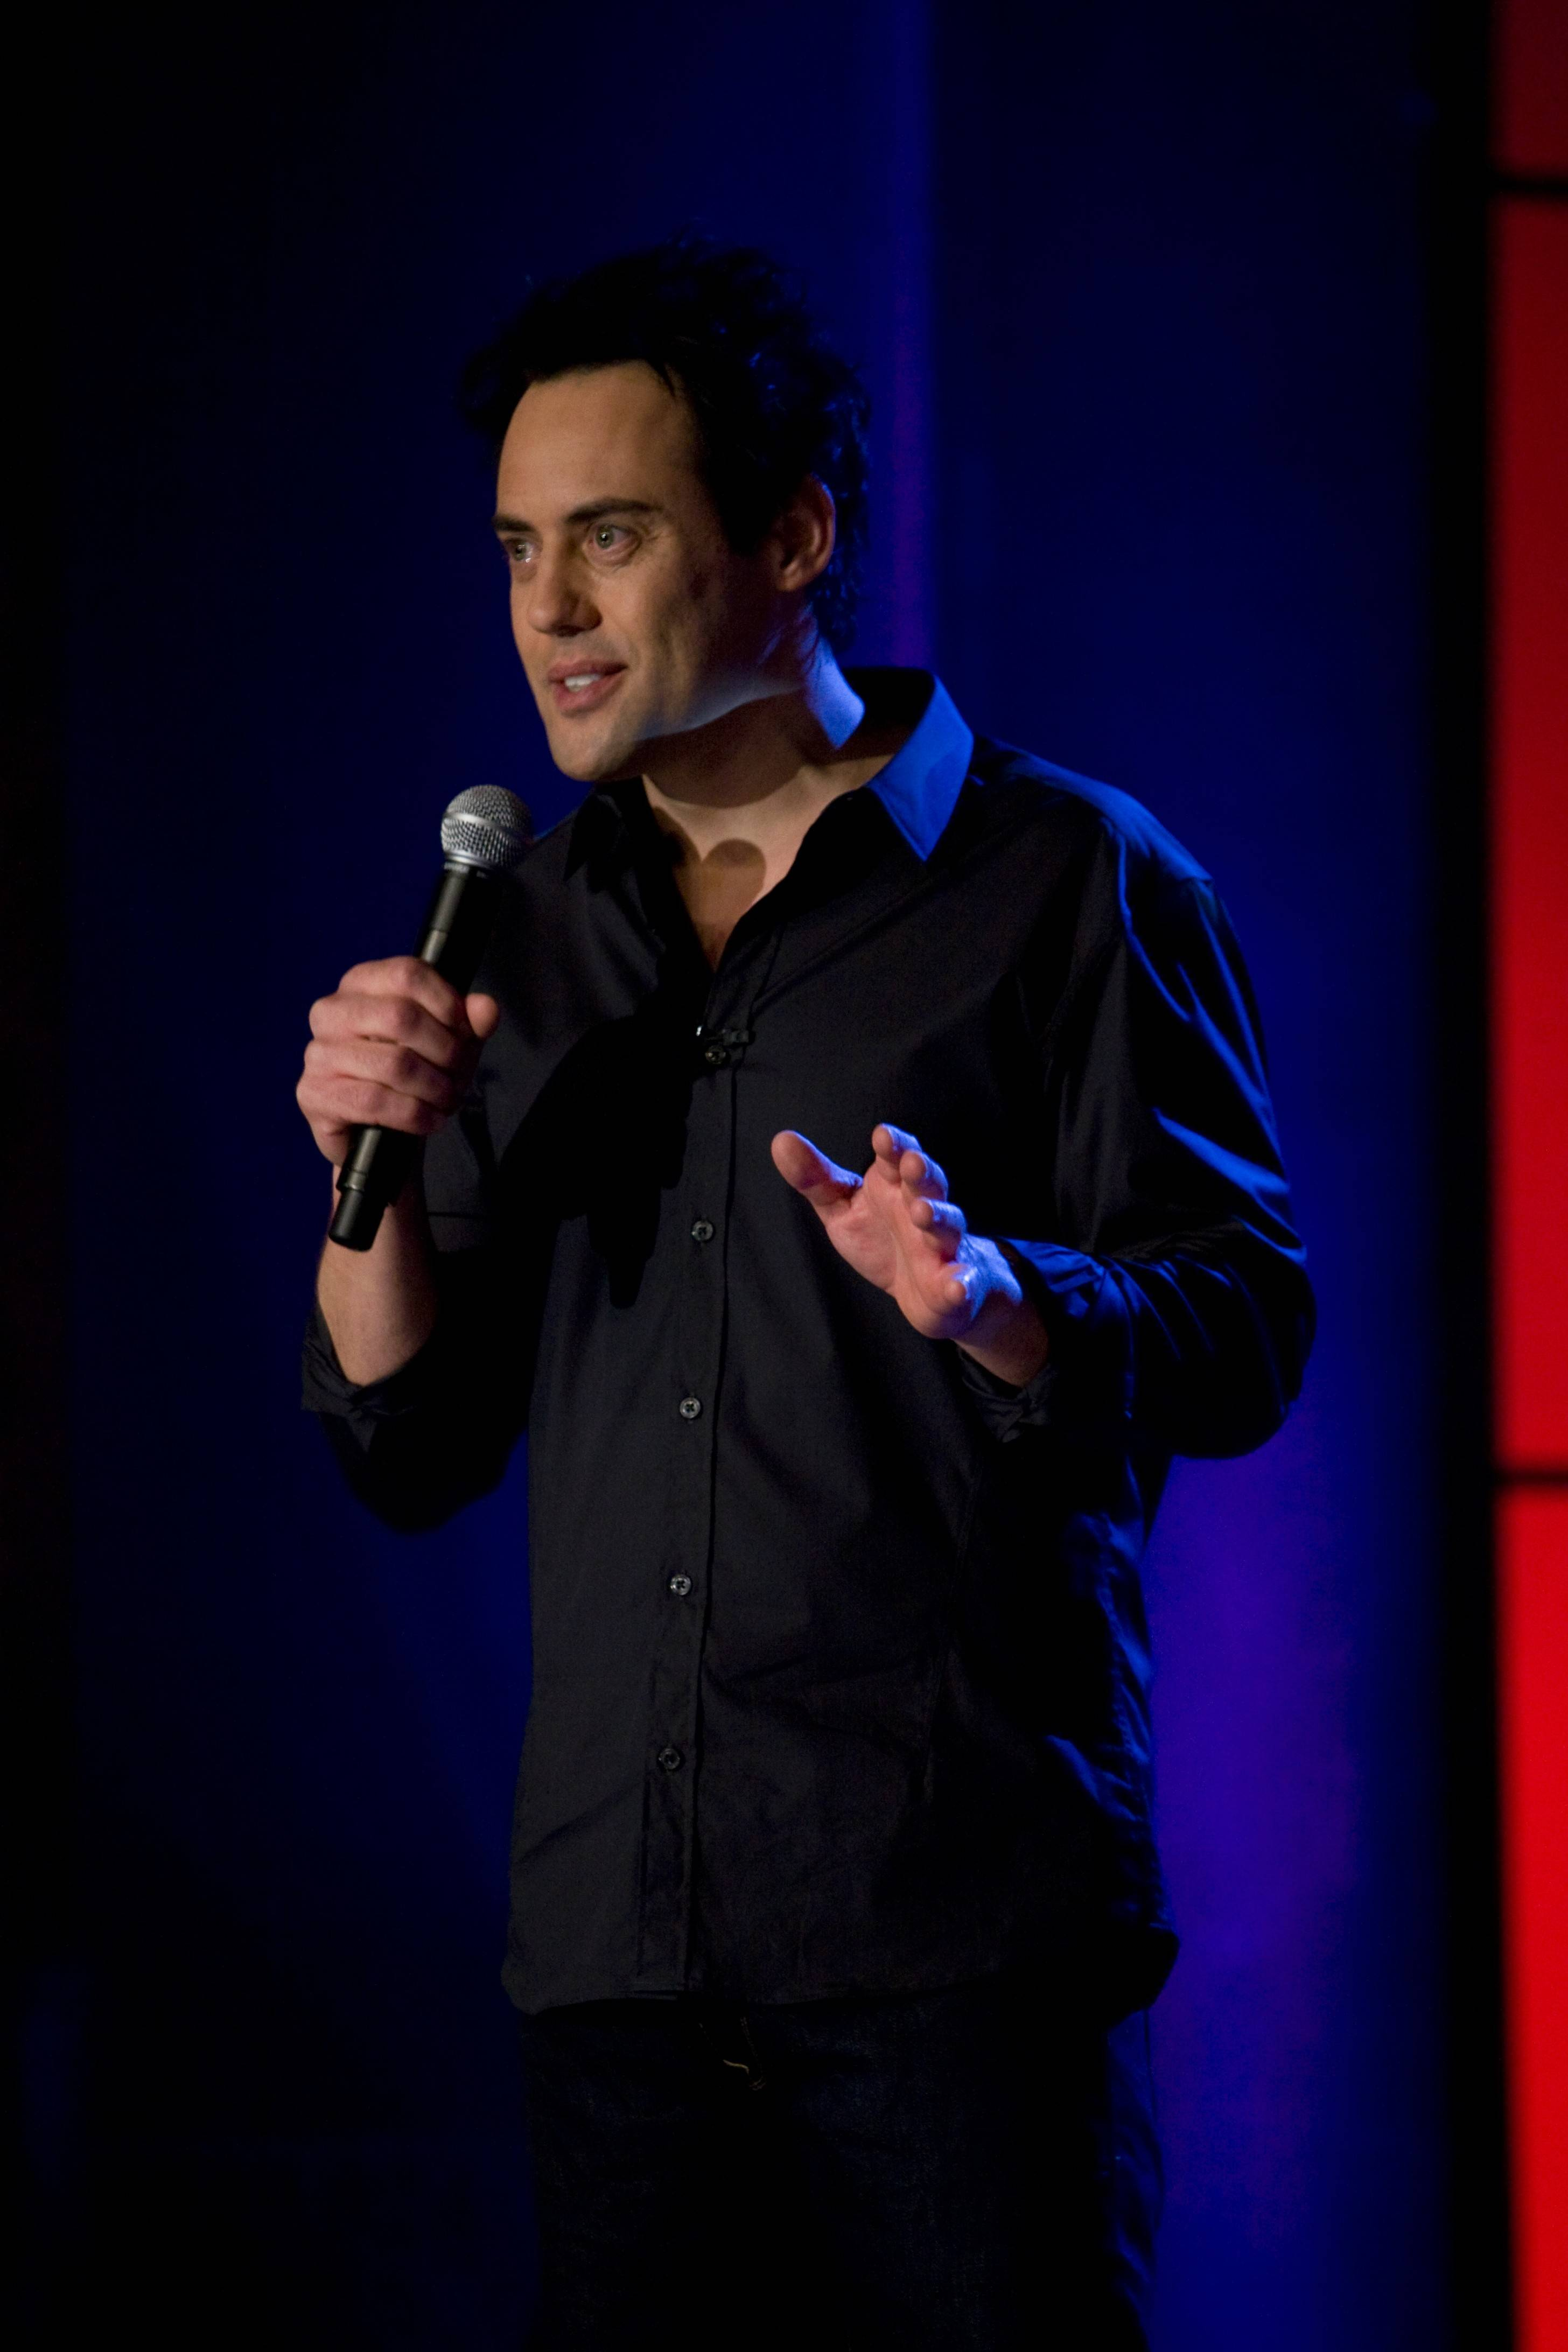 Comedian Orny Adams performs at the Improv Comedy Showcase in Schaumburg.